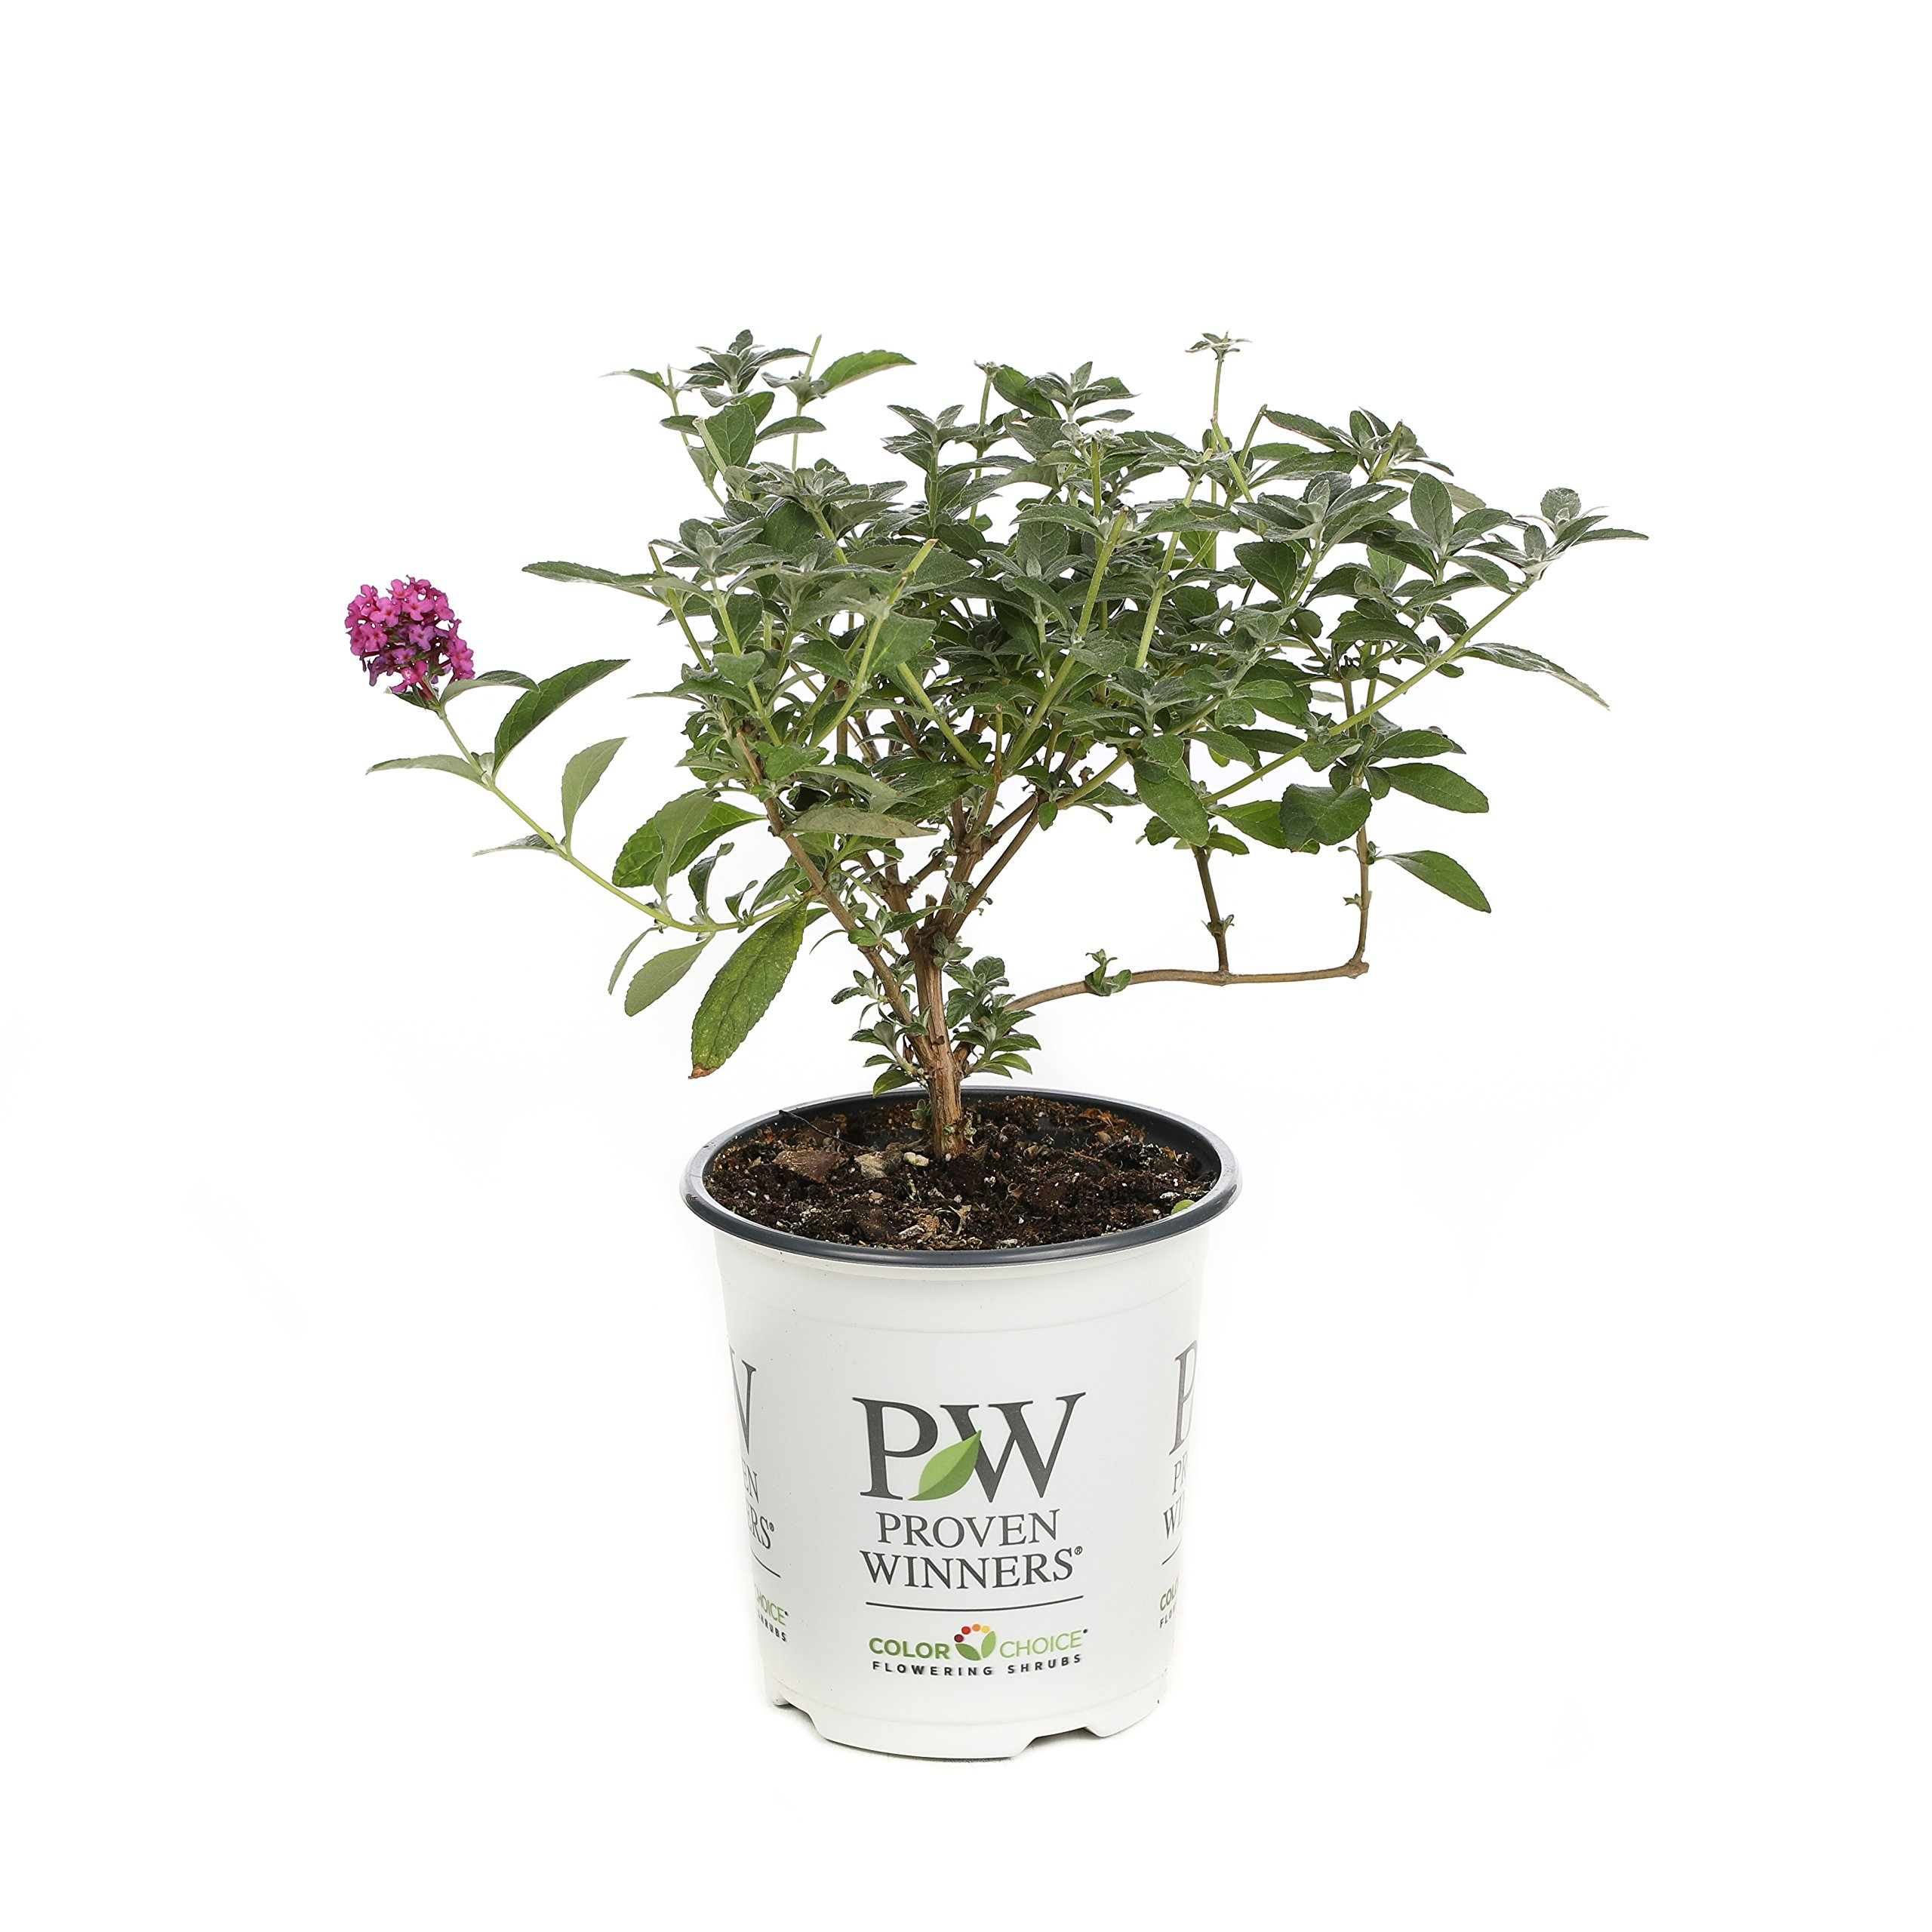 Miss Molly Butterfly Bush (Buddleia) Live Shrub, Deep Pink Flowers, 4.5 in. Quart